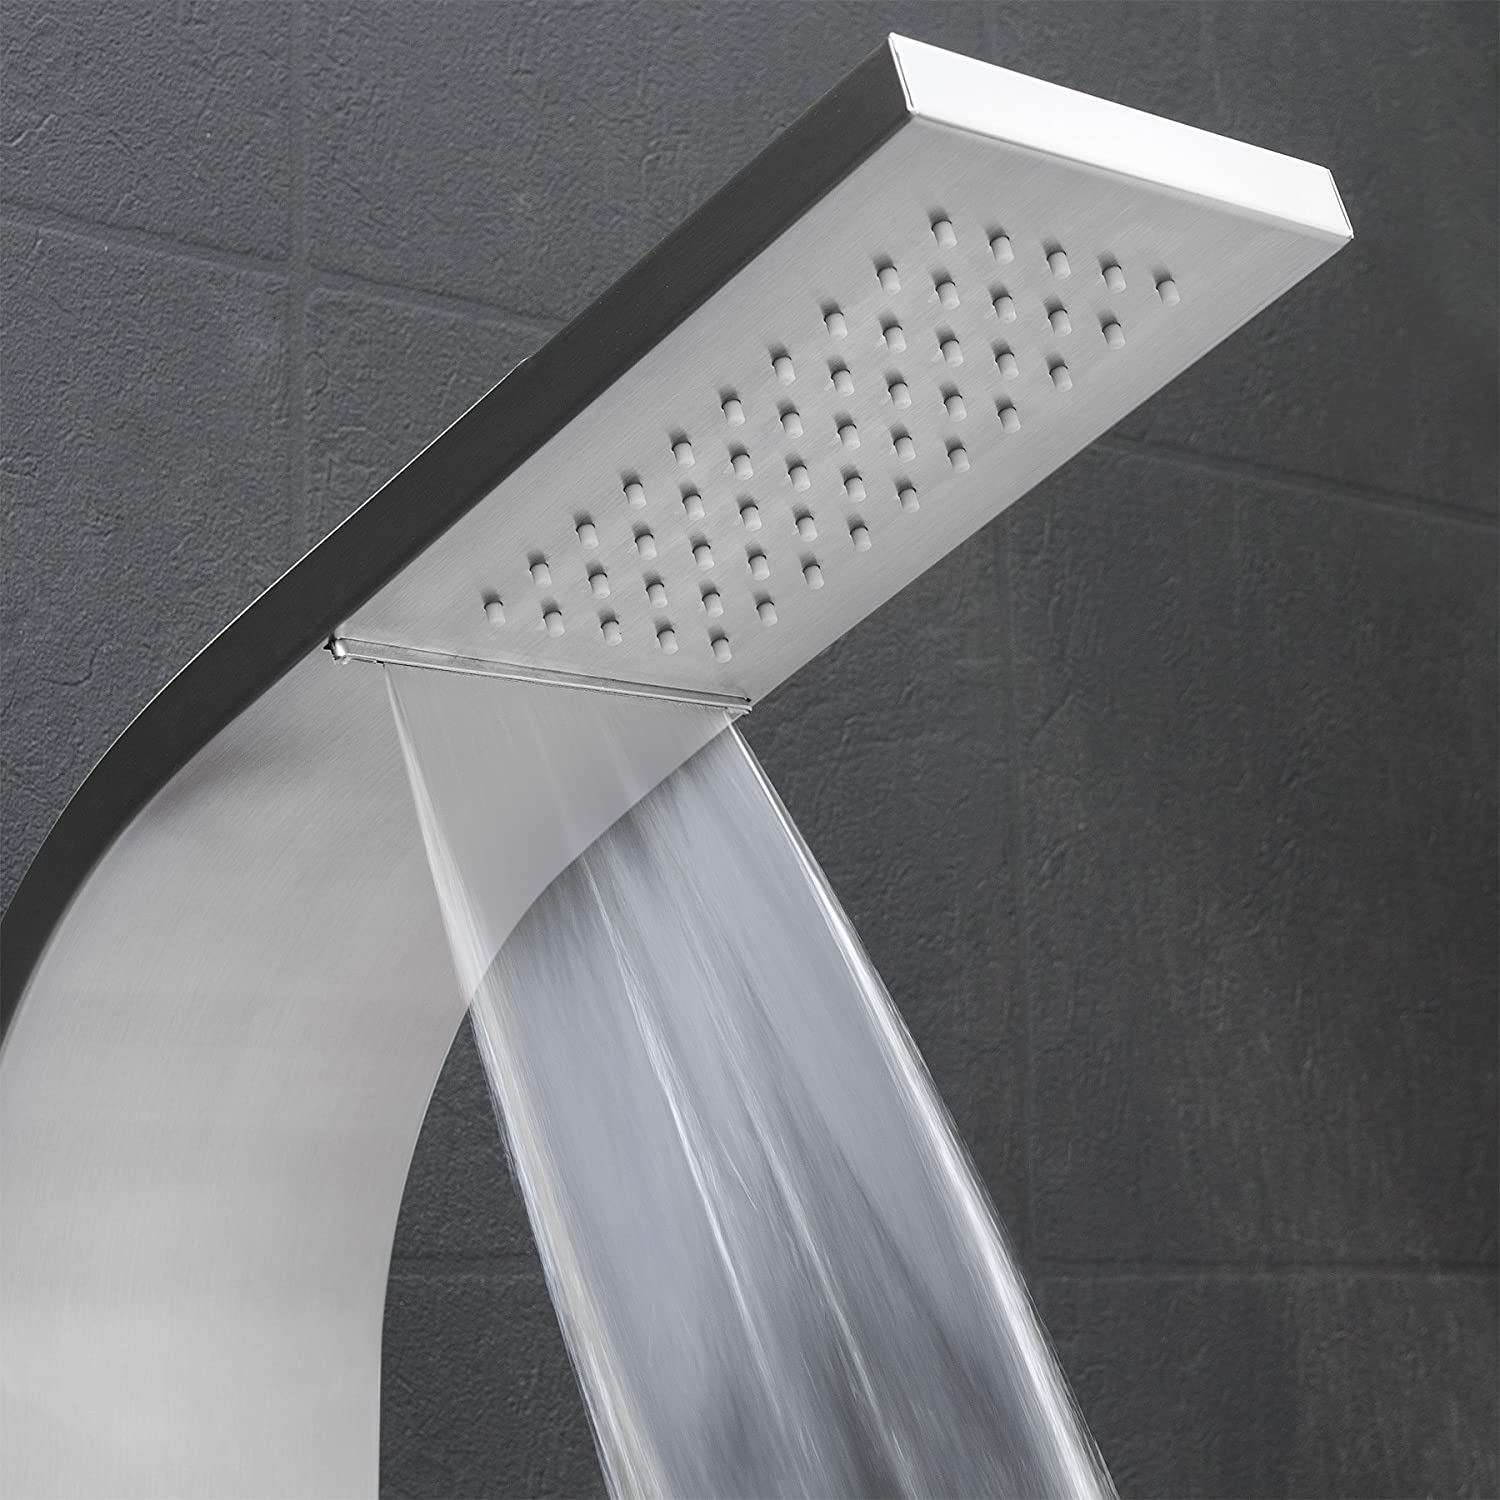 with aqualisa head and midas diverter to plus uncategorized p mixer handset bar overhead shower thermostatic